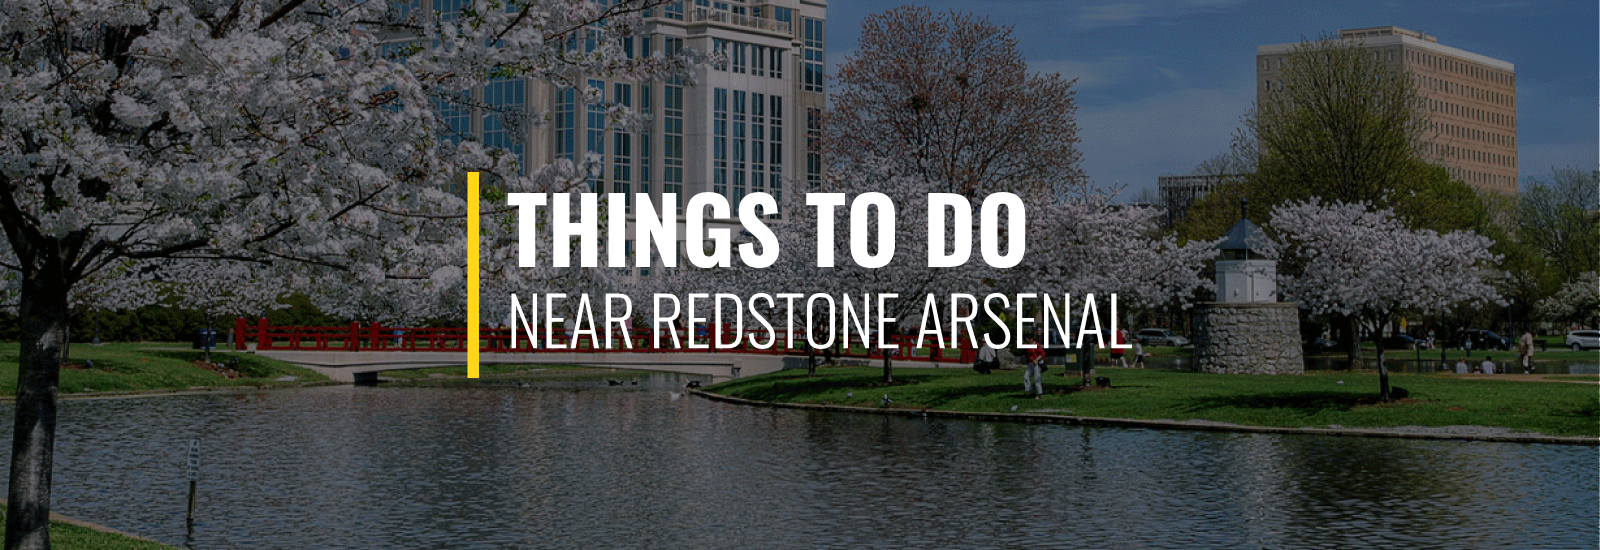 Redstone Arsenal Things to Do